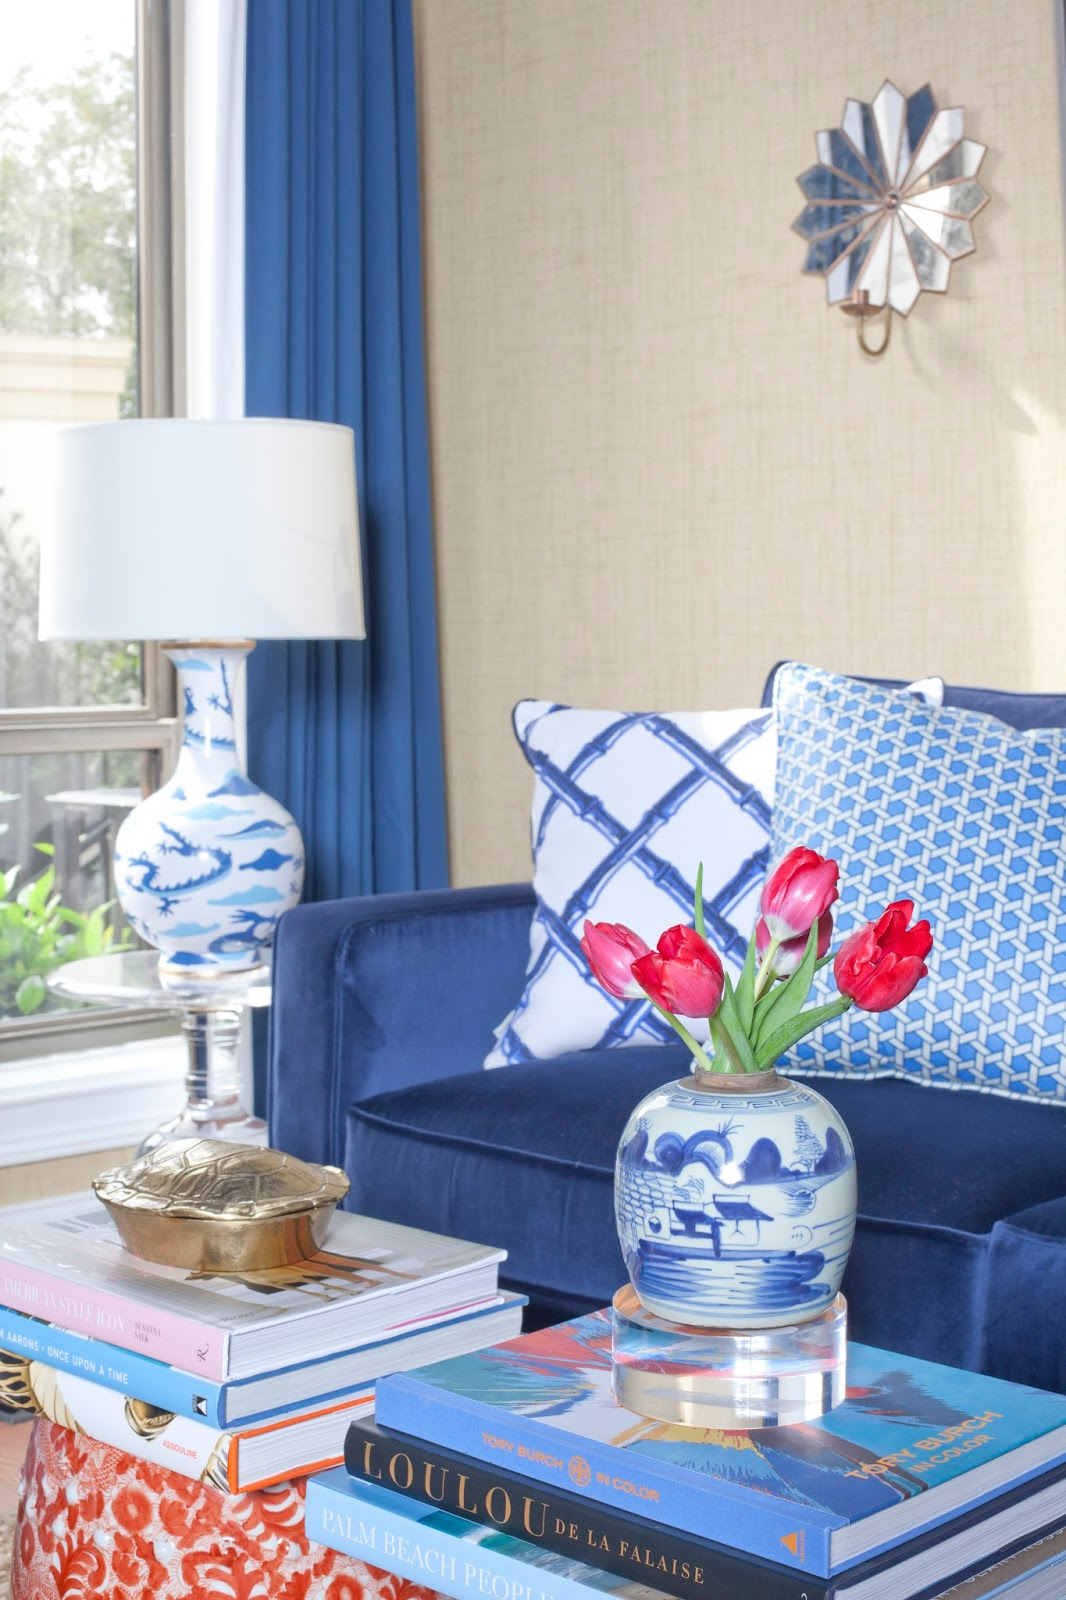 Parker Kennedy Living : Sea Island Chic By Parker Kennedy Living - The Glam Pad